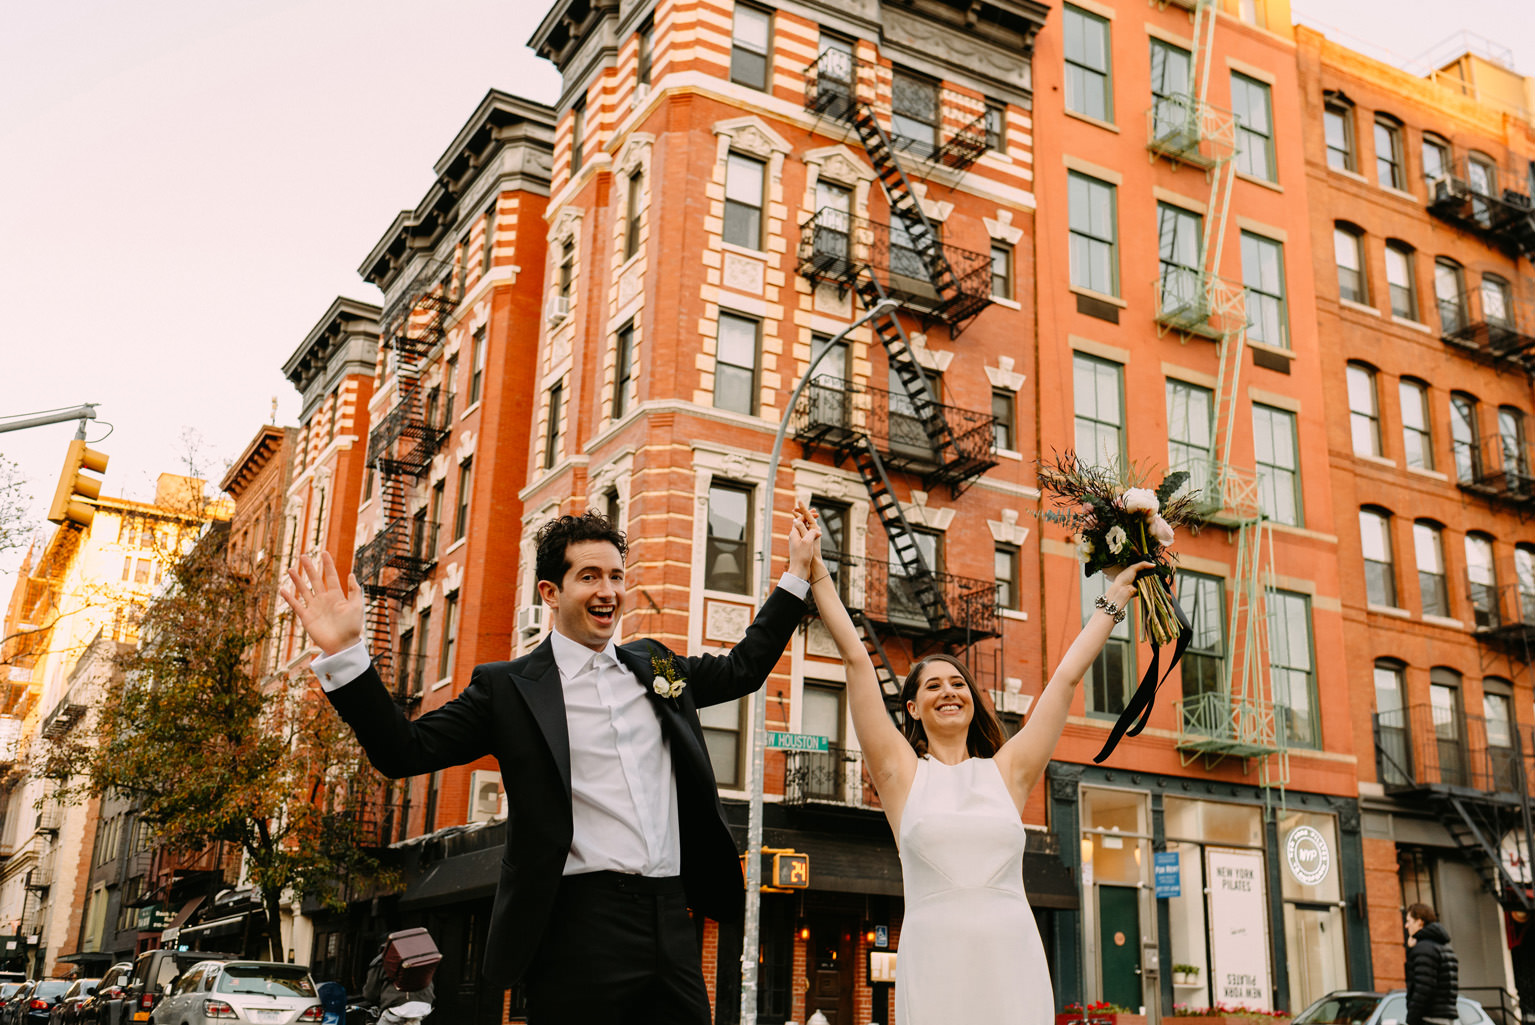 new york city winery wedding- first look on the streets of SOHO, Manhattan- Luke Sezeck Photographer